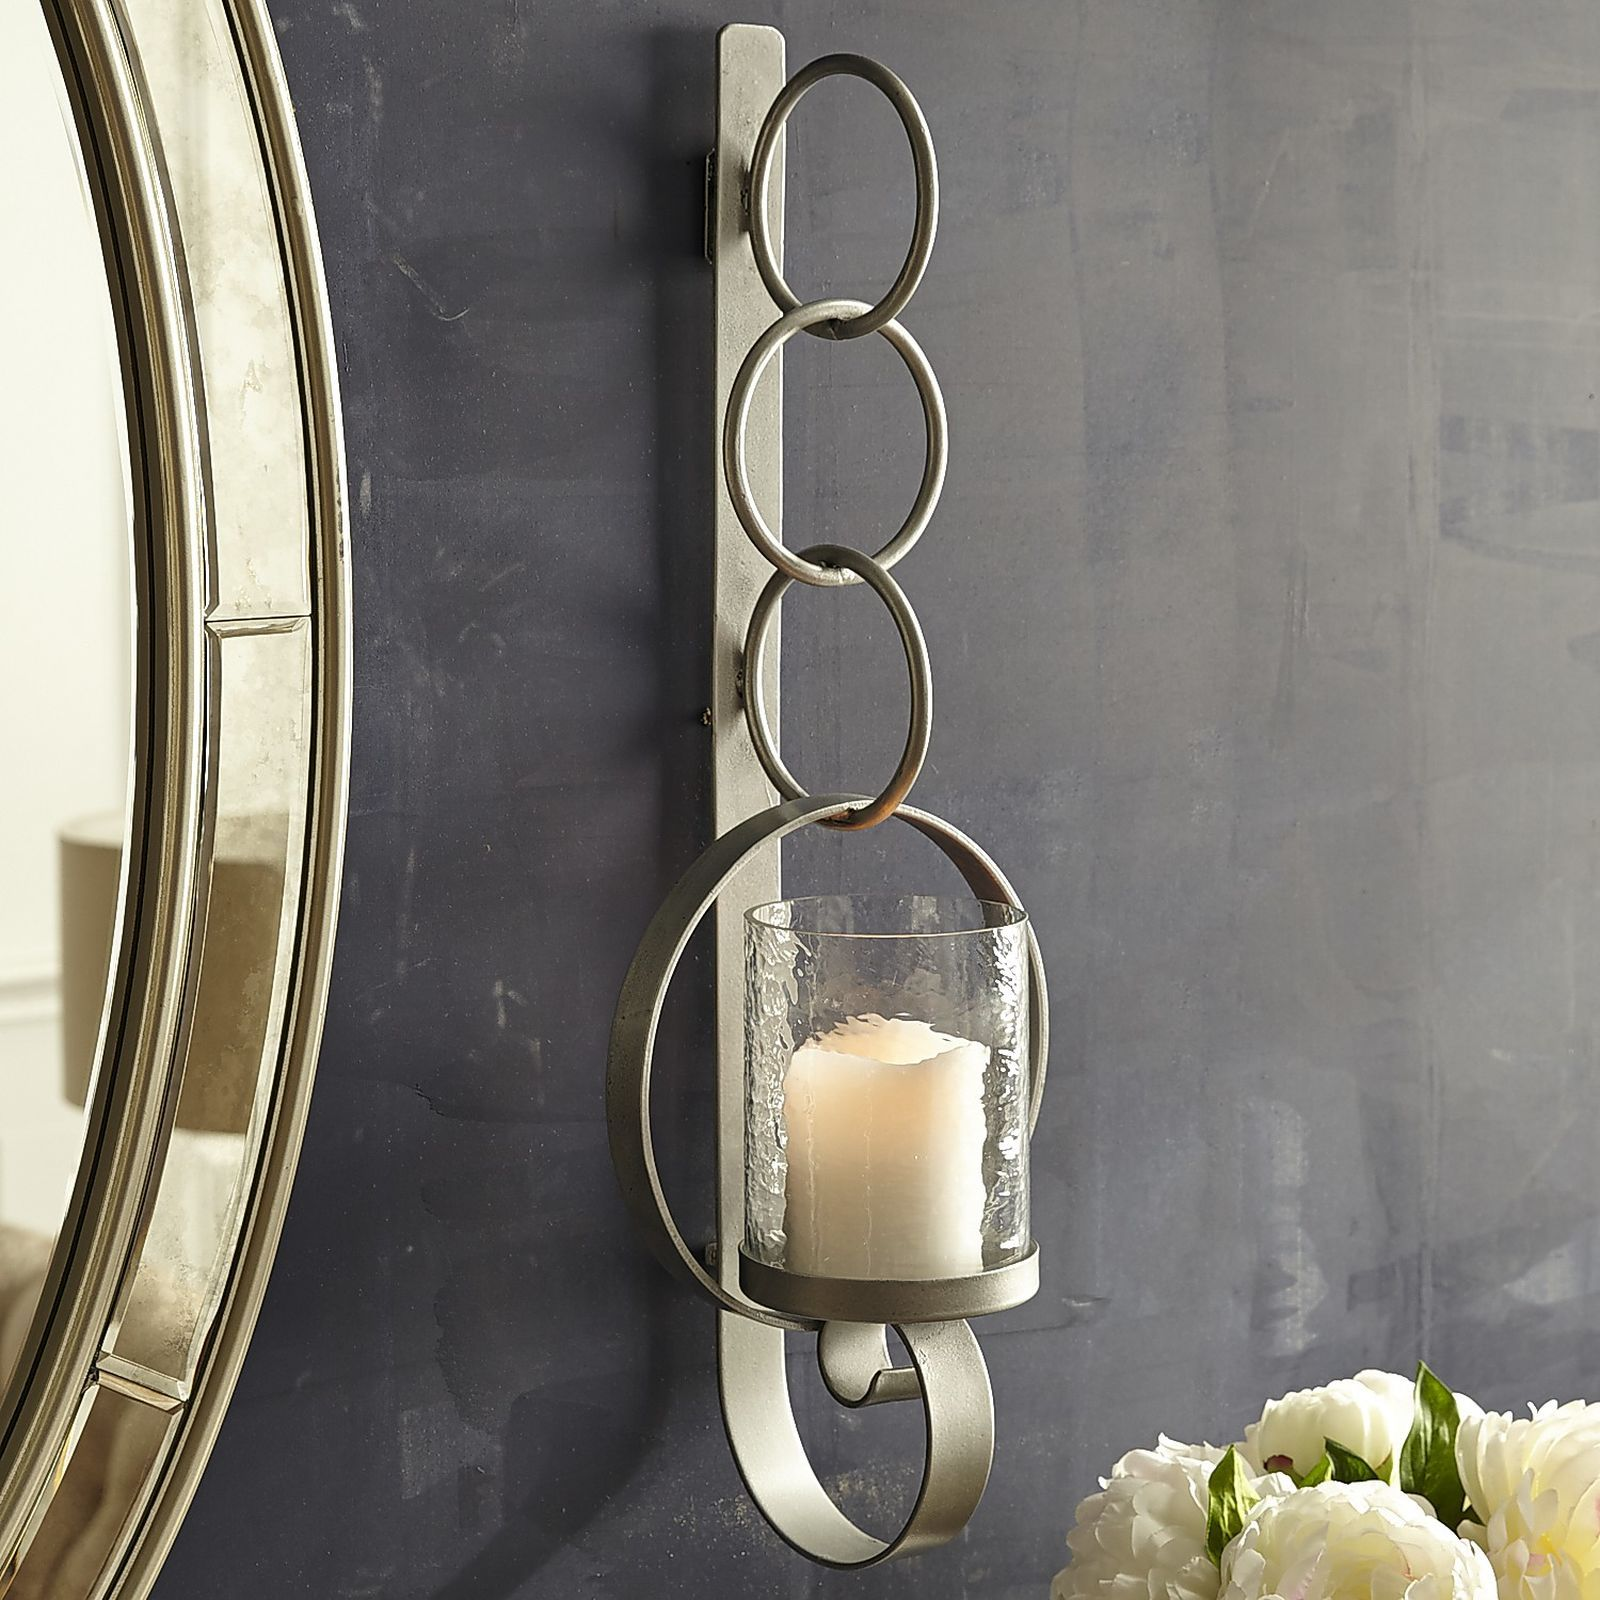 Our Silver Toned Wall Sconce Is The Missing Link In Your Interior Decor Stacked Rings Give The Impressi Candle Wall Sconces Wall Candles Silver Candle Sconces